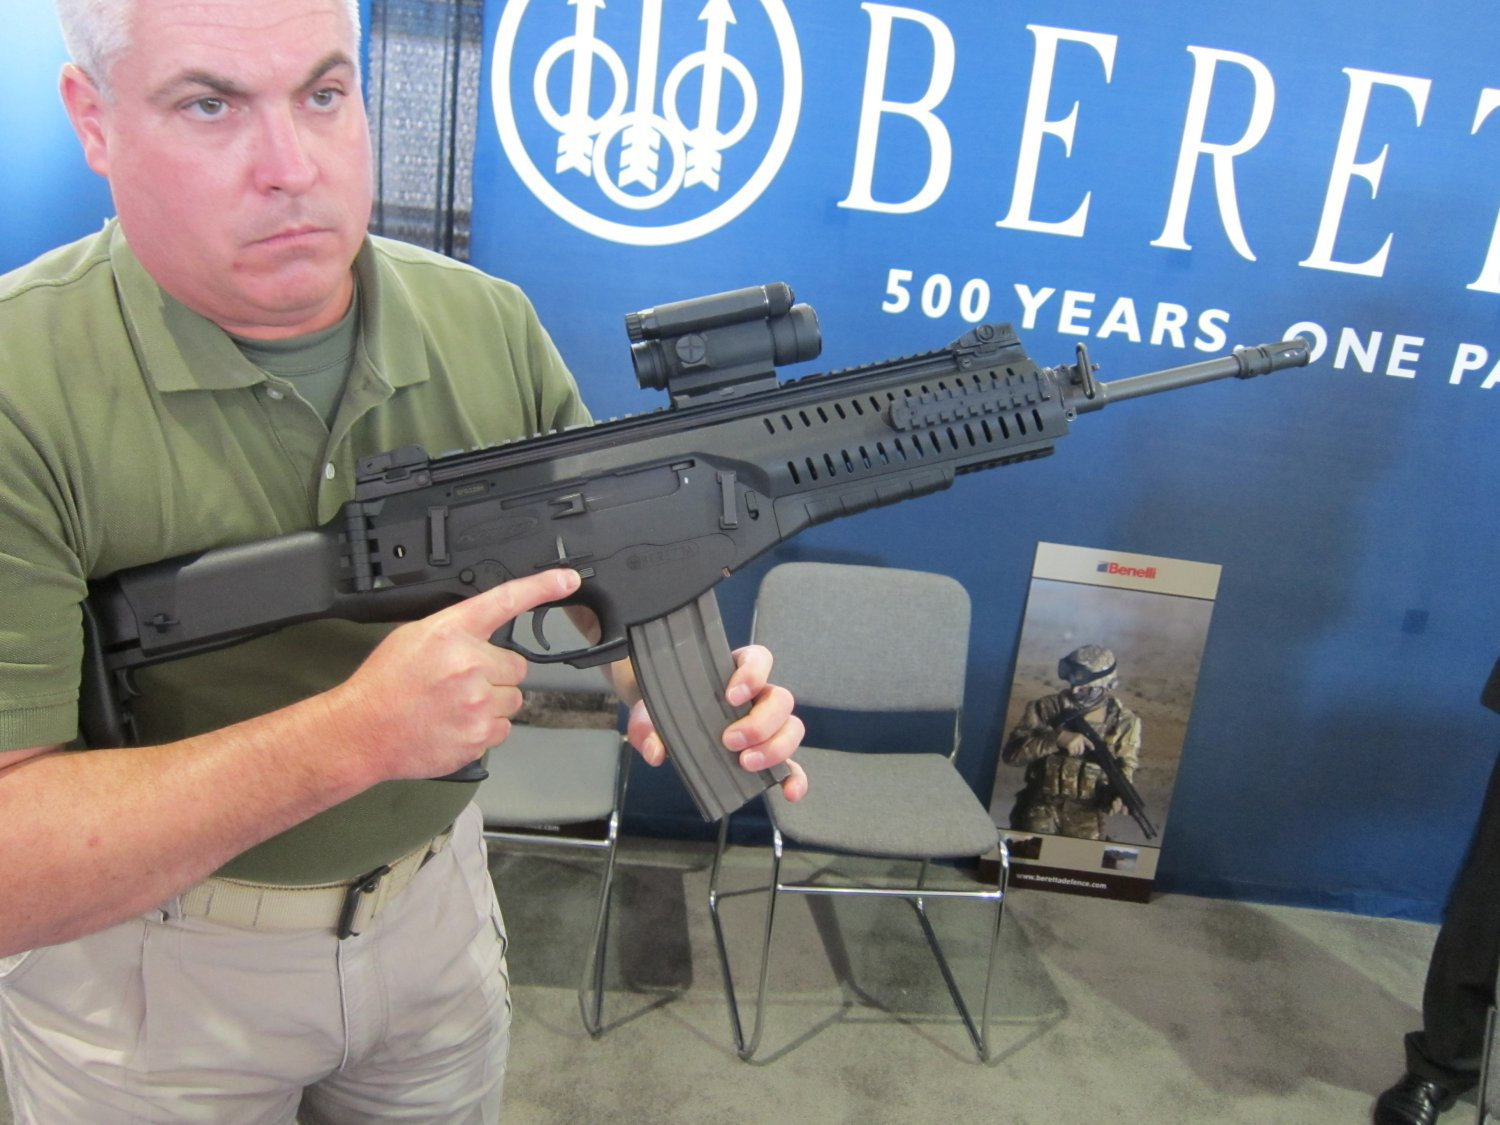 Beretta ARX 160 Assault Rifle Carbine SBR 5.56mm NATO SOFIC 2011 12 Beretta ARX 160 (also written ARX160) Modular Assault Rifle/Carbine/SBR Demo Video and Interview Transcript from SOFIC 2011: Military Special Operations Forces (SOF), Law Enforcement Officers (LEOs), and Civilian Tactical Shooters Get Tactical Rifle/Carbine with Ambi (Ambidextrous) Controls, Side Switchable Charging Handle, and Quick Change Barrel (QCB) System!